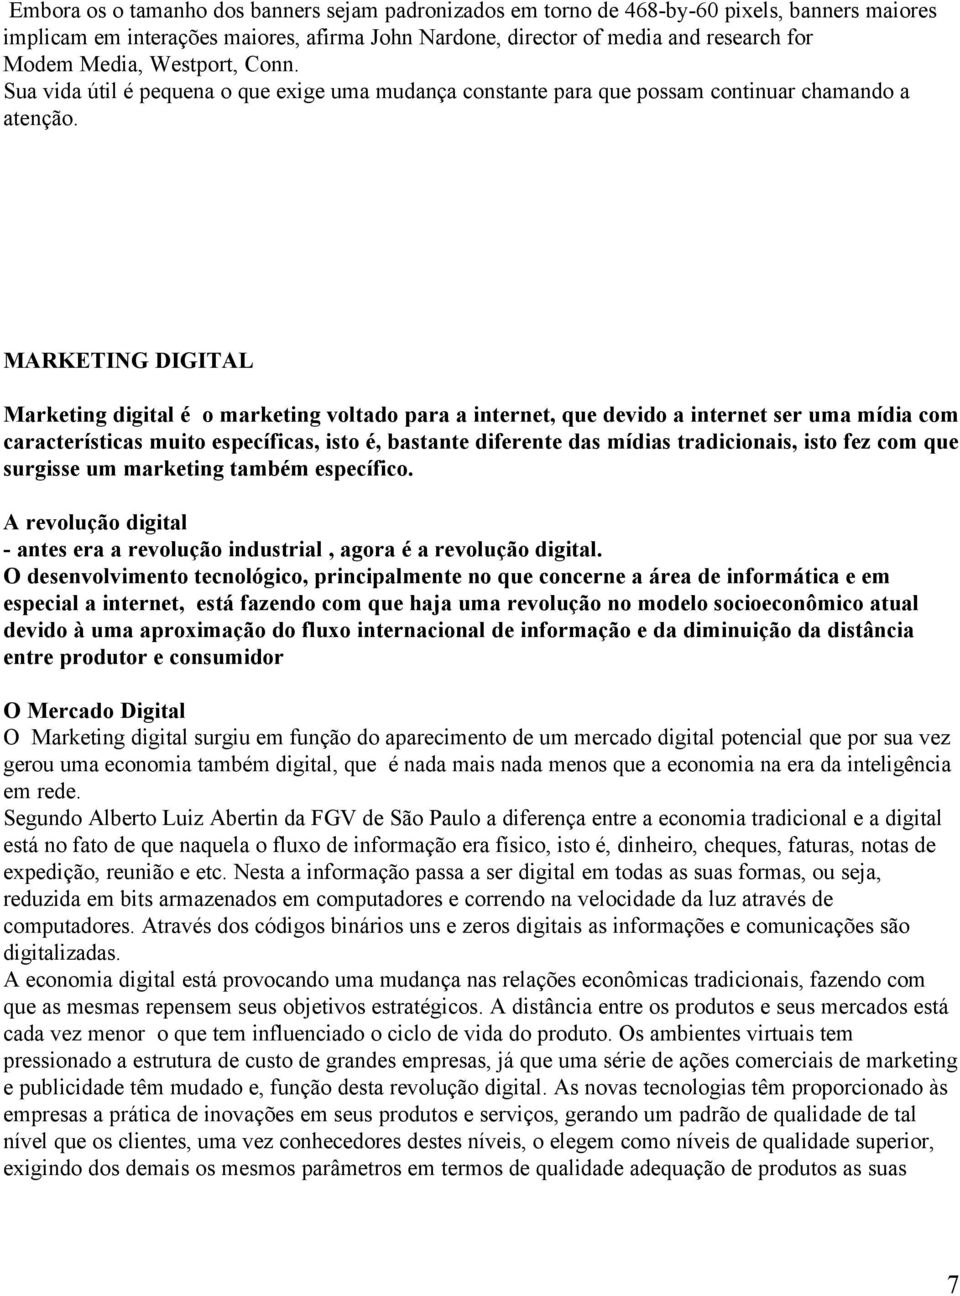 MARKETING DIGITAL Marketing digital é o marketing voltado para a internet, que devido a internet ser uma mídia com características muito específicas, isto é, bastante diferente das mídias